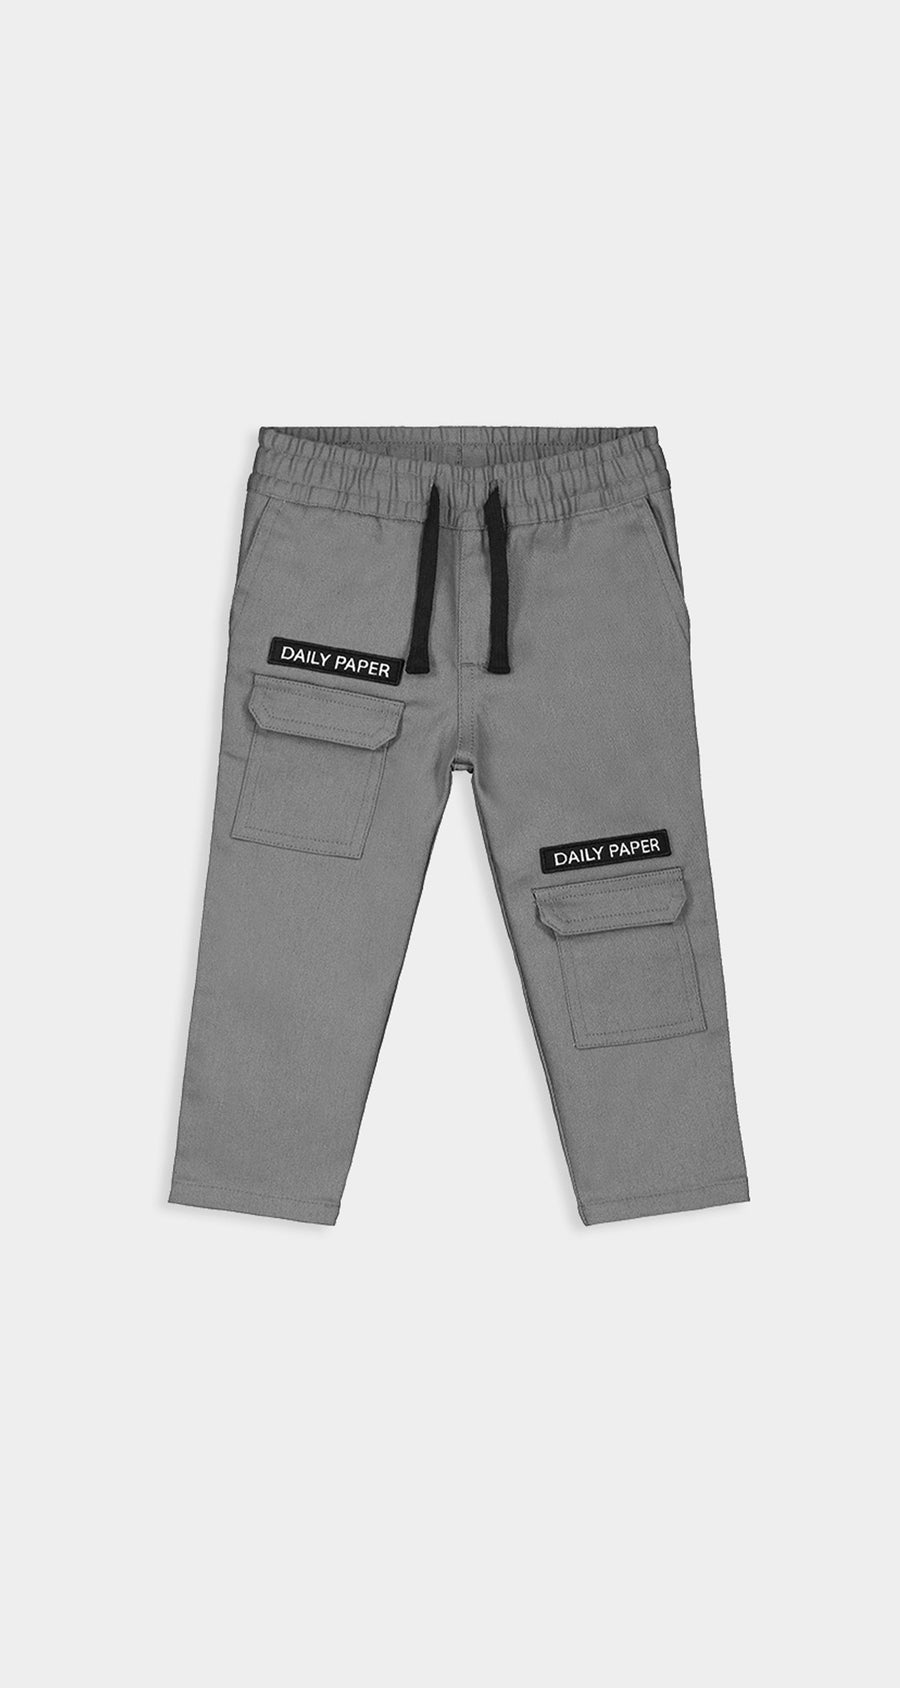 Daily Paper - Grey Kids Cargo Pants Front